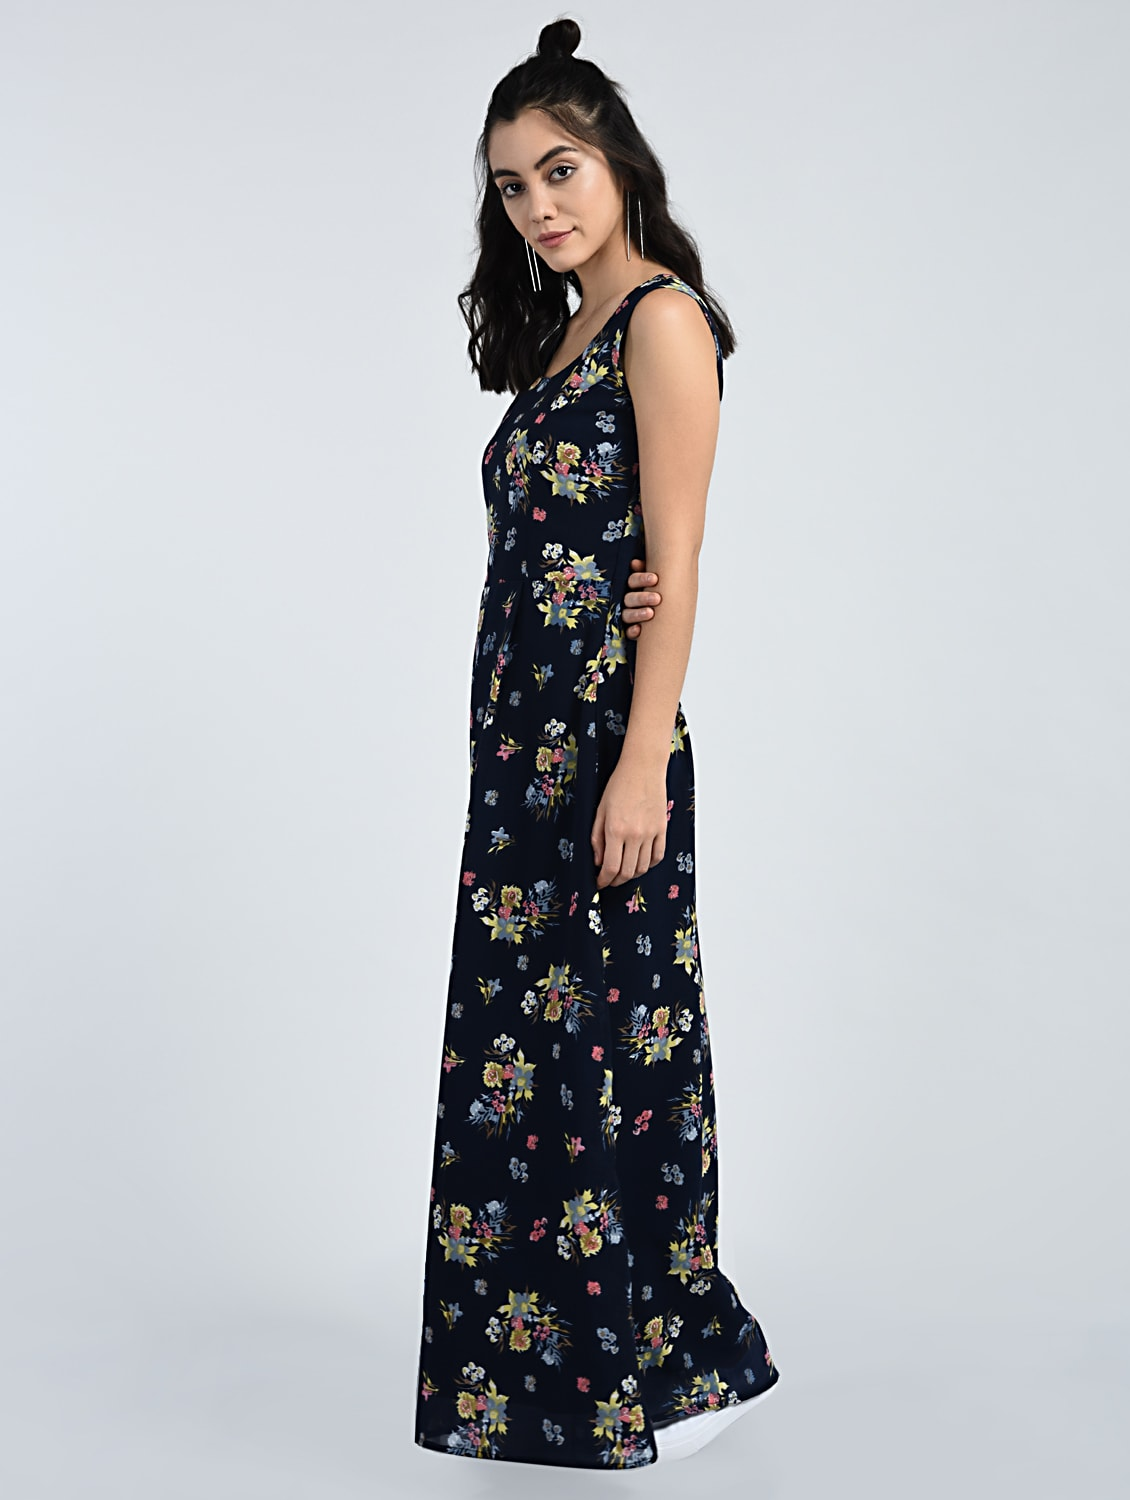 d81425f37eab0 Buy Floral Sleeveless Maxi Dress for Women from A K Fashion for ₹855 at 39%  off